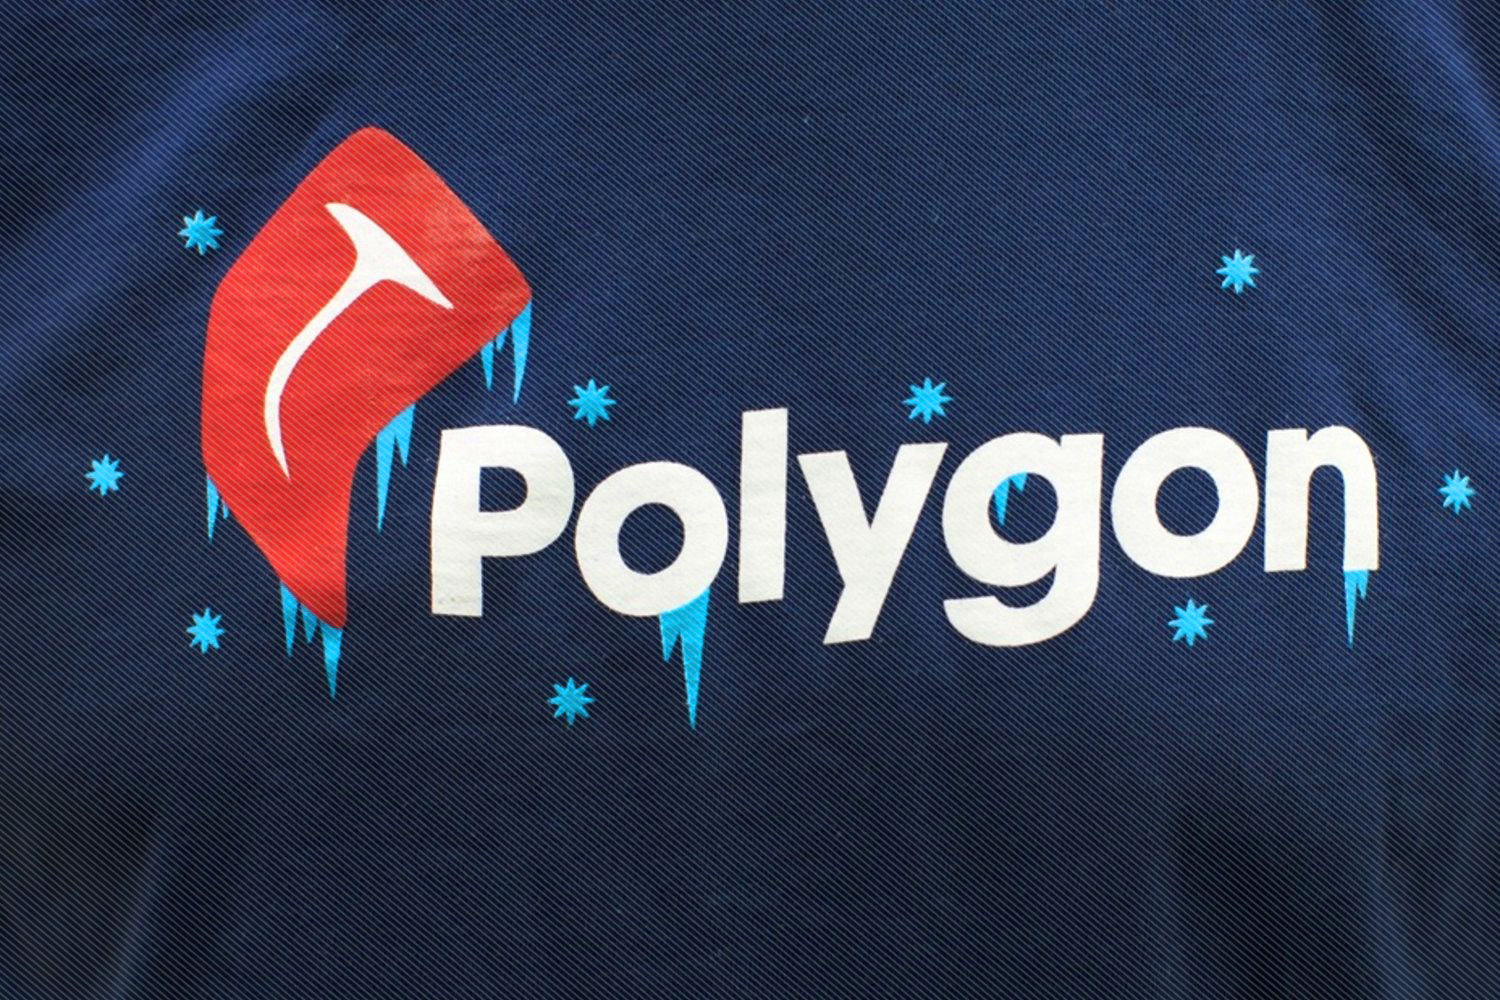 Polygon Freezer Beef T-shirt